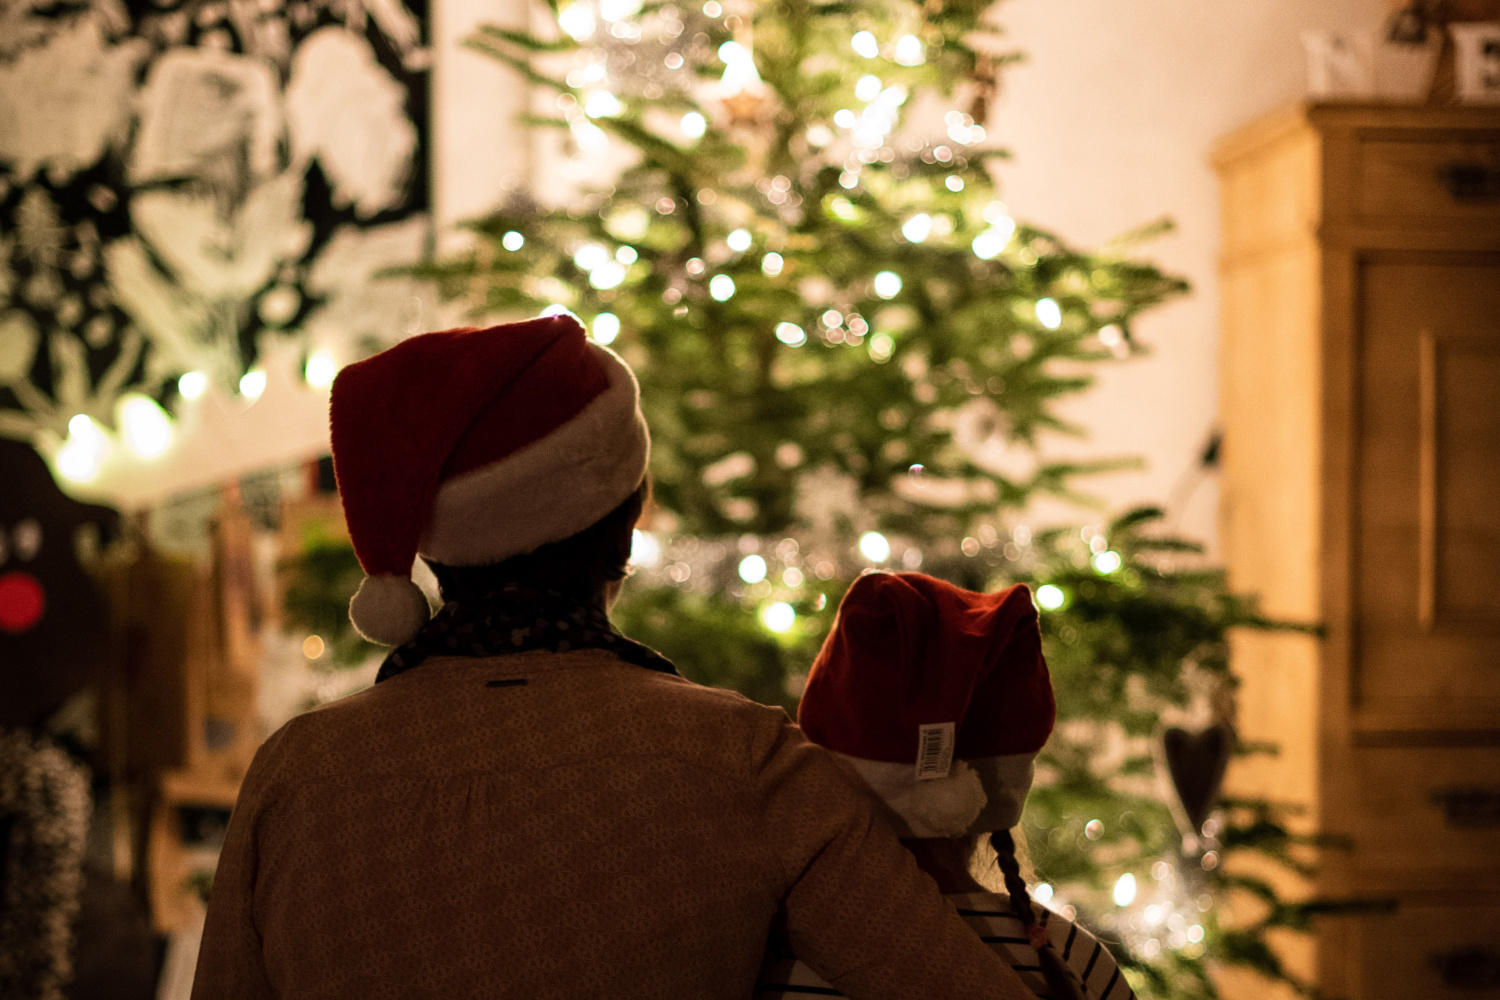 A parent and child sit with their backs to the camera, looking towards a Christmas tree twinkling with fairy lights. They both have Santa hats on and the parent has one arm around the child. 2020 - It's a Wrap by Garden Escape